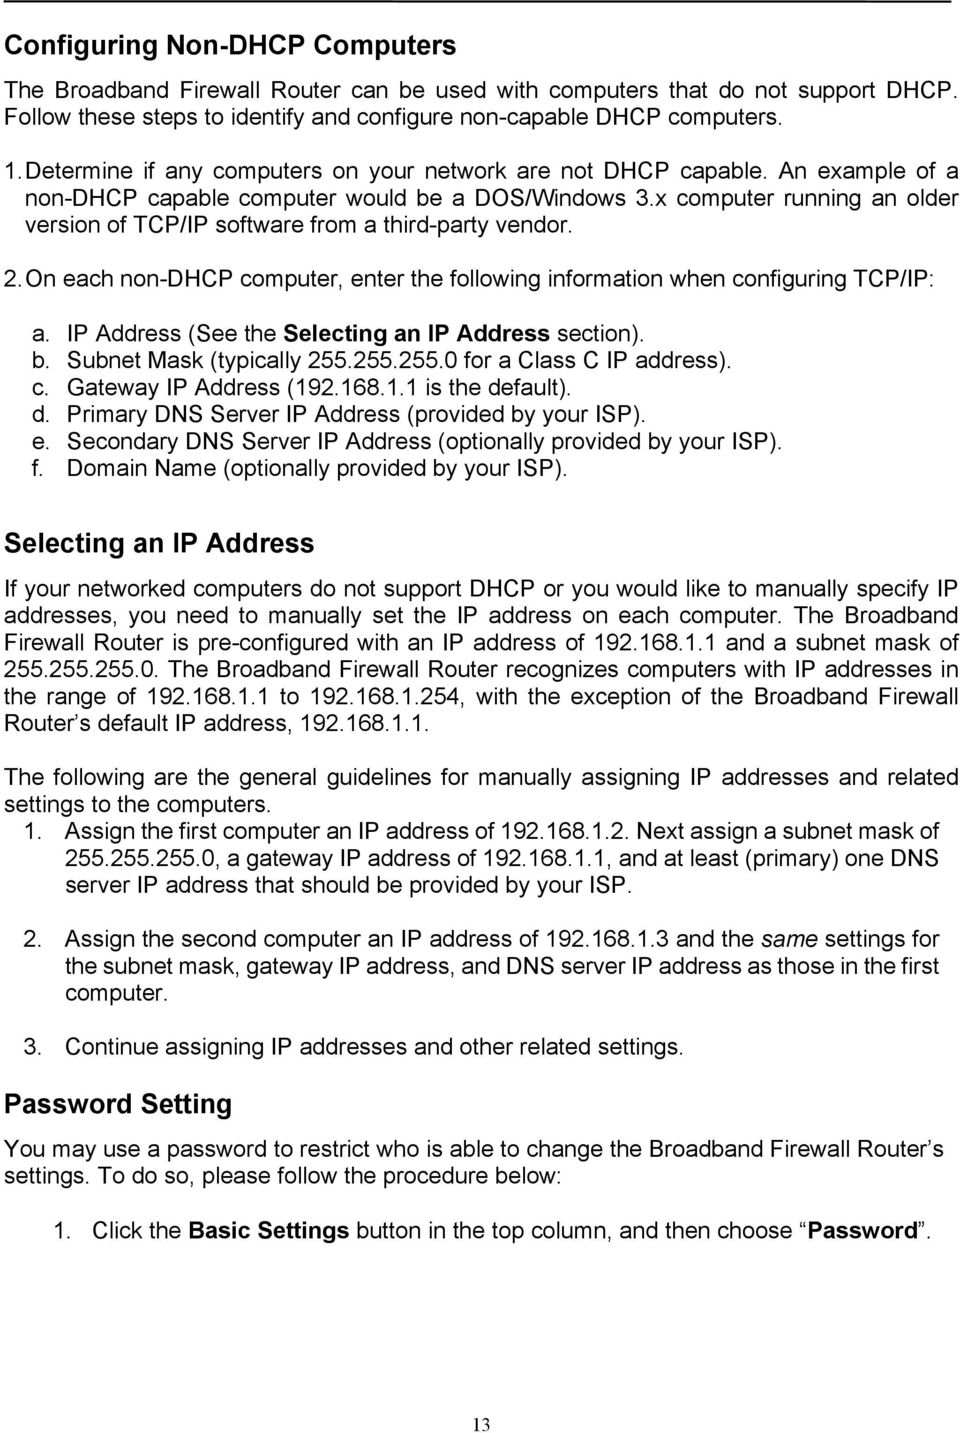 x computer running an older version of TCP/IP software from a third-party vendor. 2. On each non-dhcp computer, enter the following information when configuring TCP/IP: a.